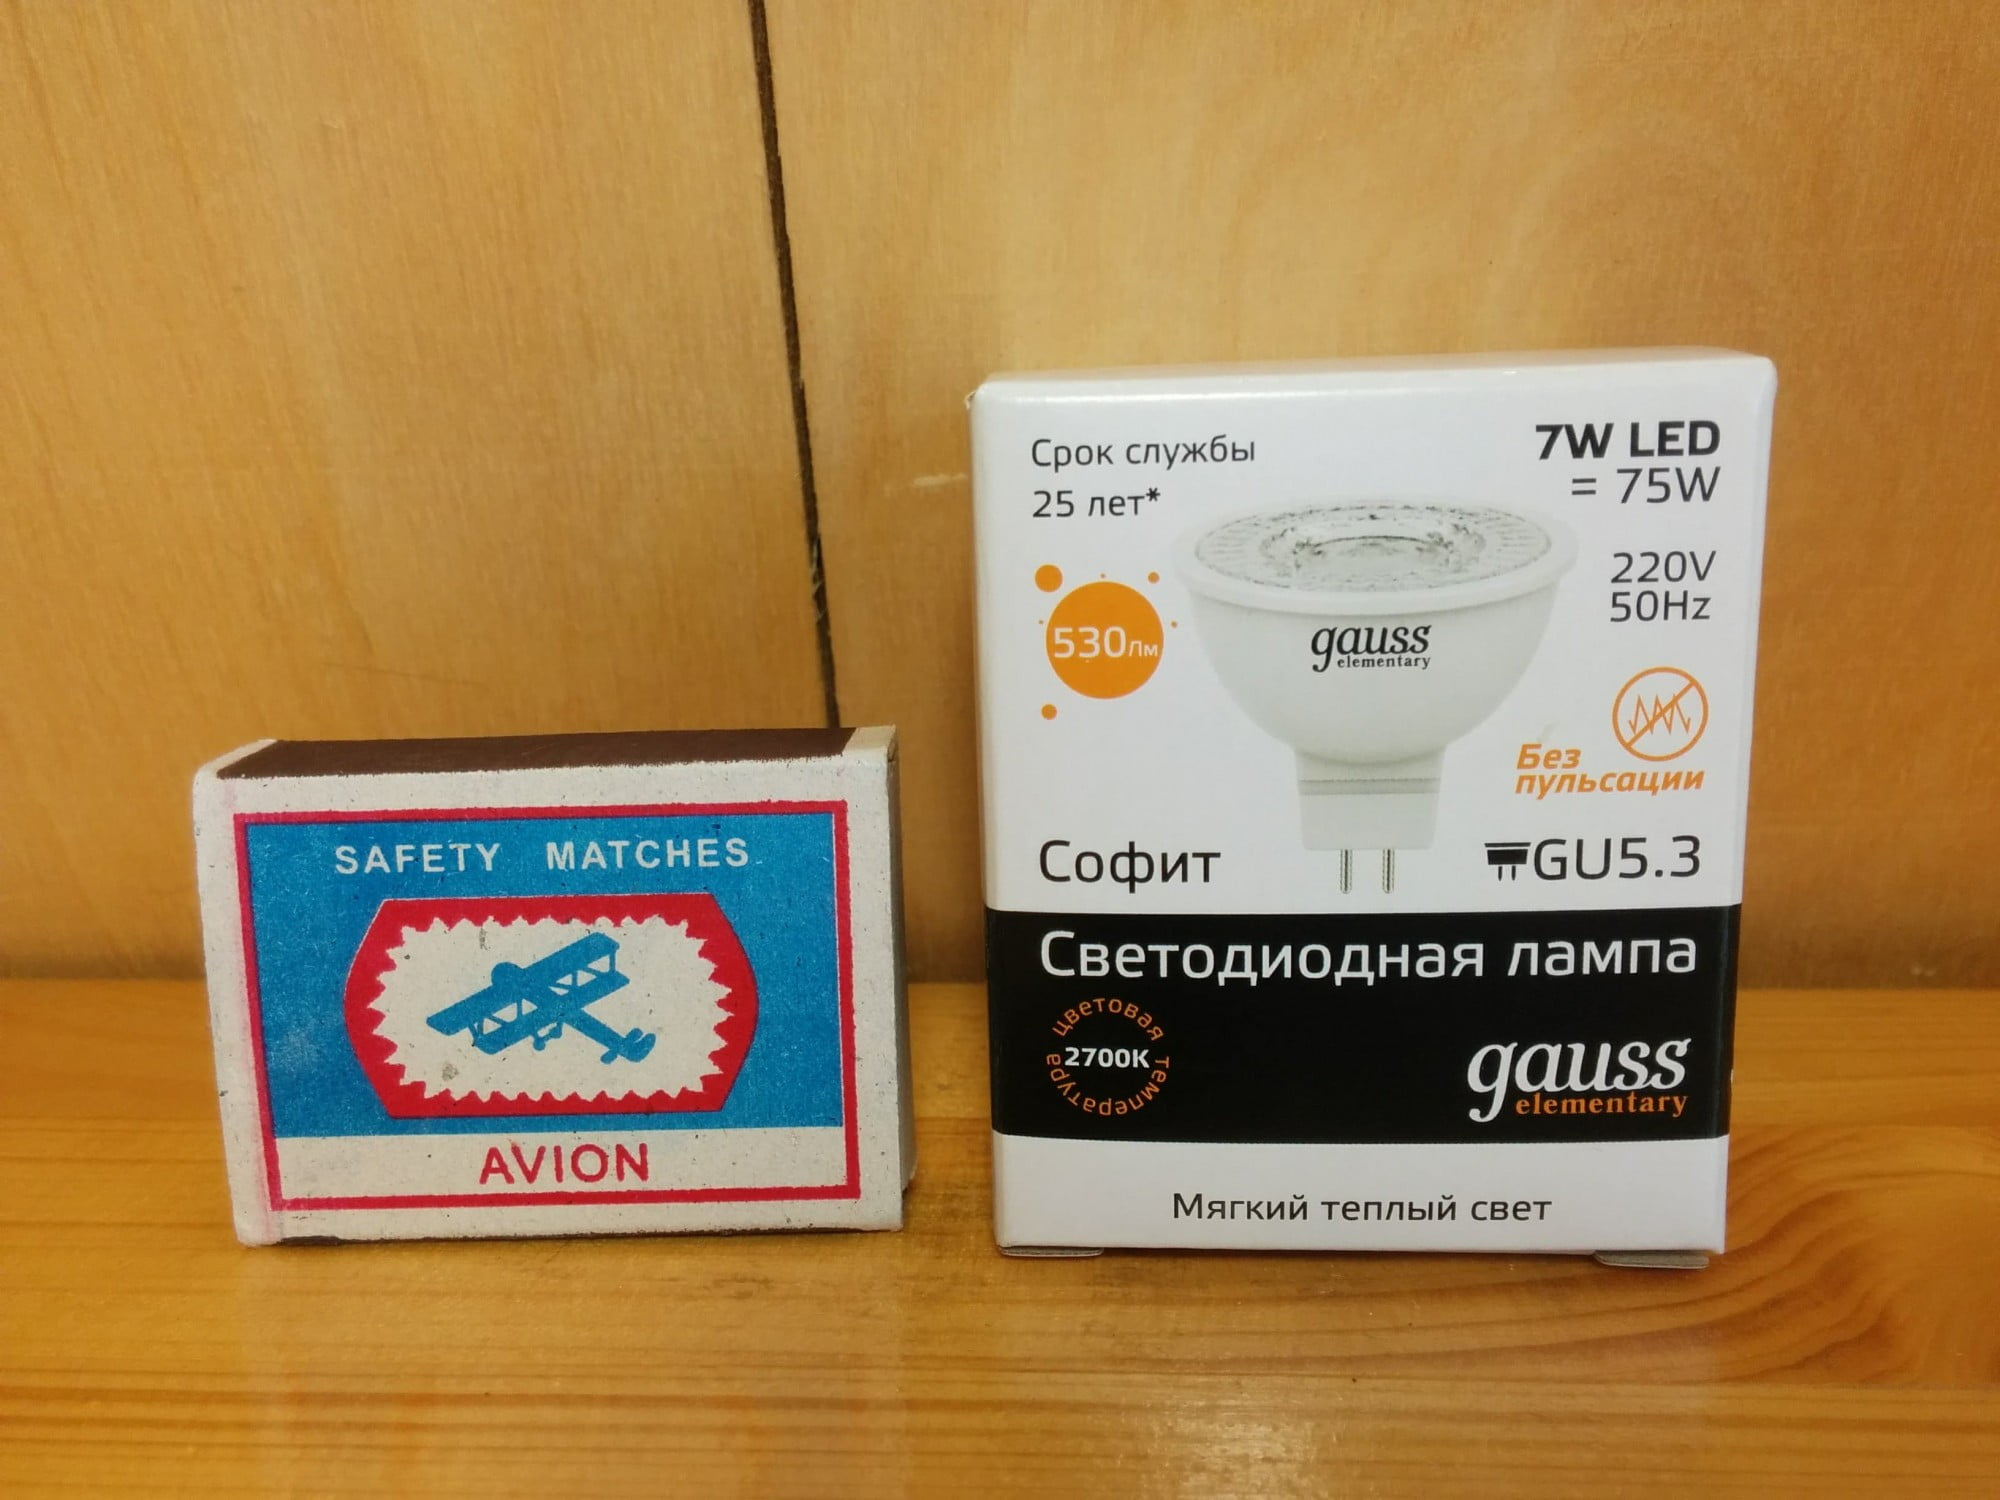 Gauss LED Elementary MR16 GU5.3 7W 2700K упаковка